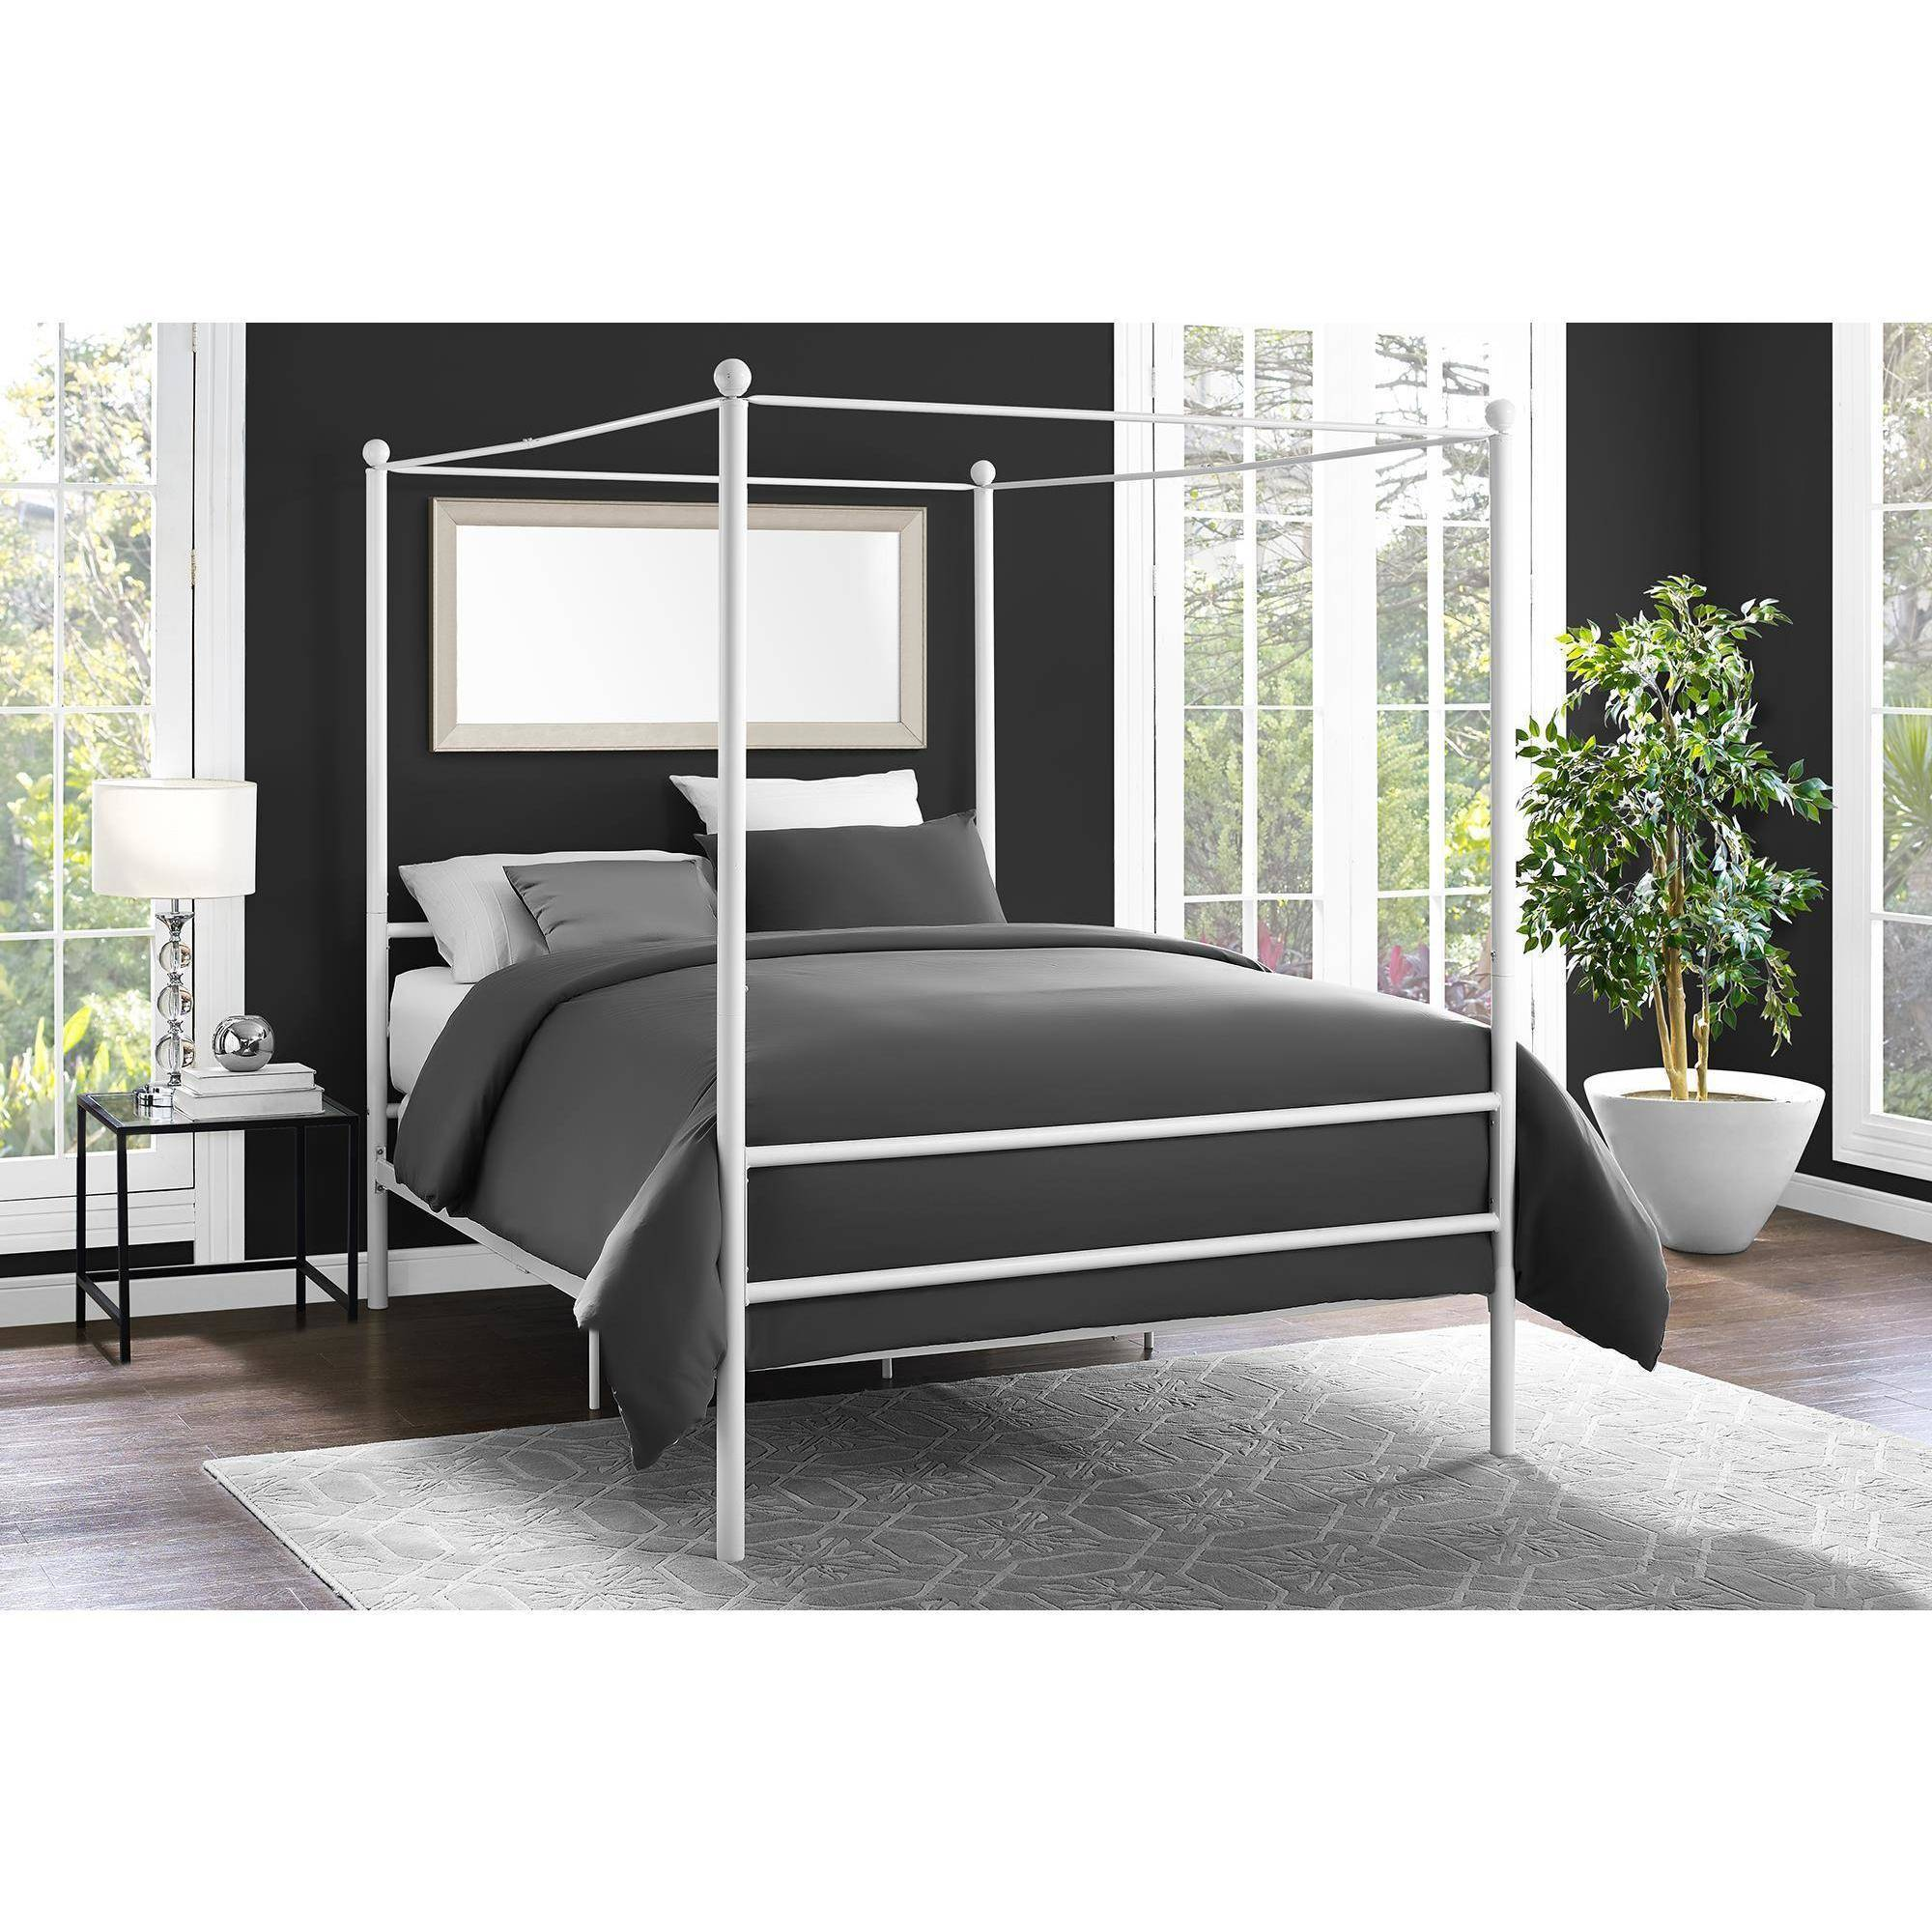 mainstays metal canopy bed multiple colors multiple sizes